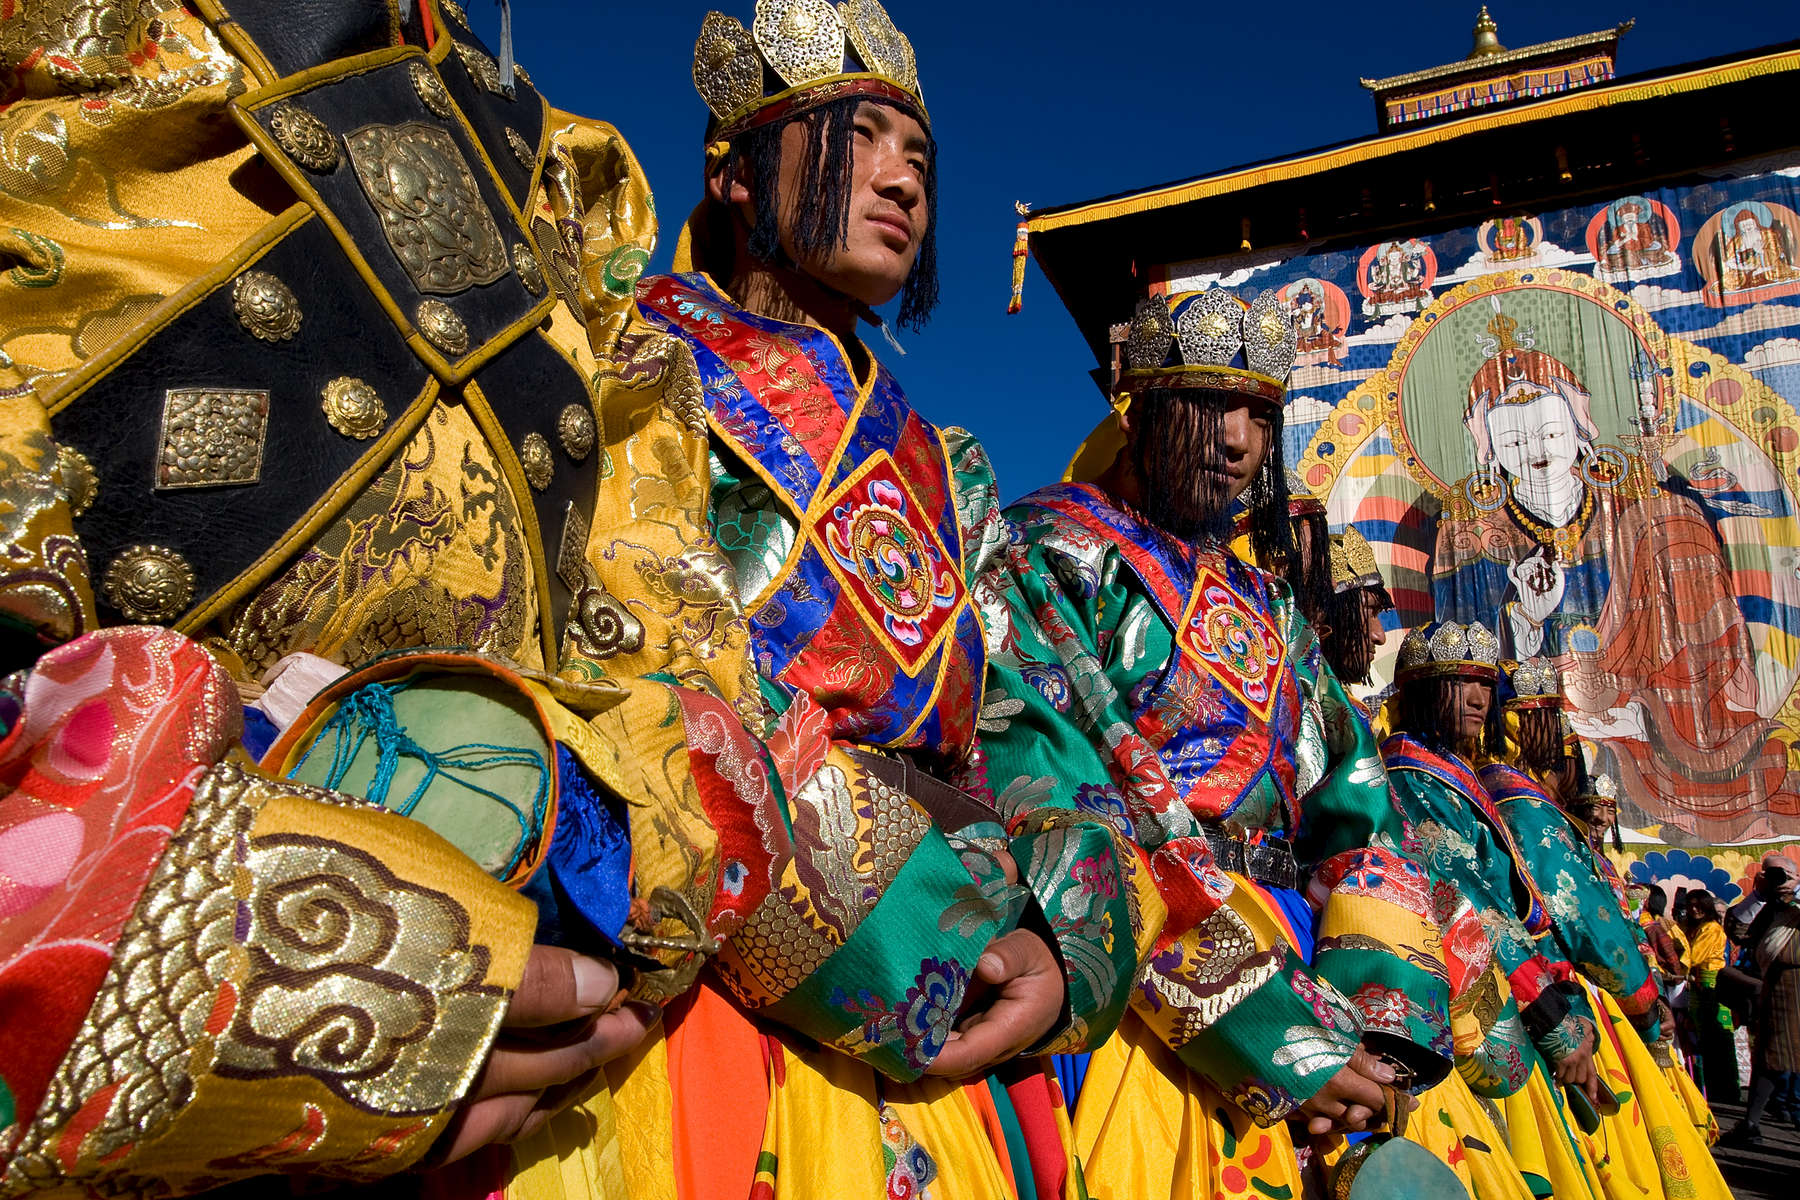 THIMPHU, BHUTAN -NOV 6, 2008: Bhutanese ceremonial dancers stand in line as the coronation ceremony begins November 6, 2008 in Thimphu, Bhutan. Jigme Khesar Namgyel Wangchuck, 28, the young Bhutanese king,  became the youngest reigning monarch on the planet today. He was handed the Raven Crown by his father, the former King Jigme Singye Wangchuck, in an ornate ceremony in Thimpu, the capital. The tiny Himalayan kingdom, a Buddhist nation of 635,000 people is wedged between China and India .  (Photo by Paula Bronstein/Getty Images)